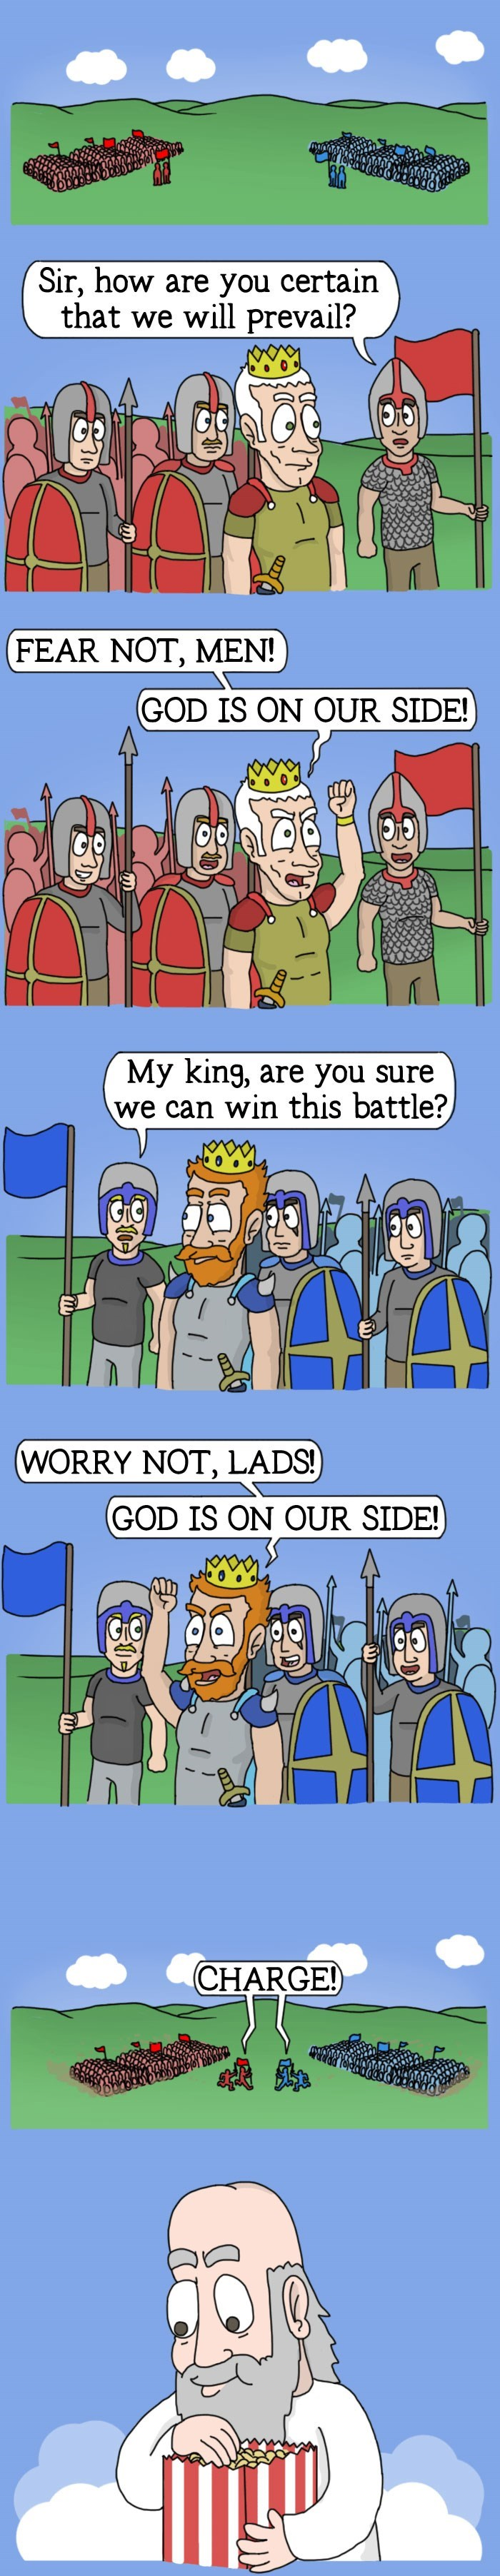 Cartoon - Sir, how are you certain that we will prevail? (FEAR NOT, MEN! GOD IS ON OUR SIDE! My king, are you sure we can win this battle?, (WORRY NOT, LADS!) GOD IS ON OUR SIDE! CHARGE!